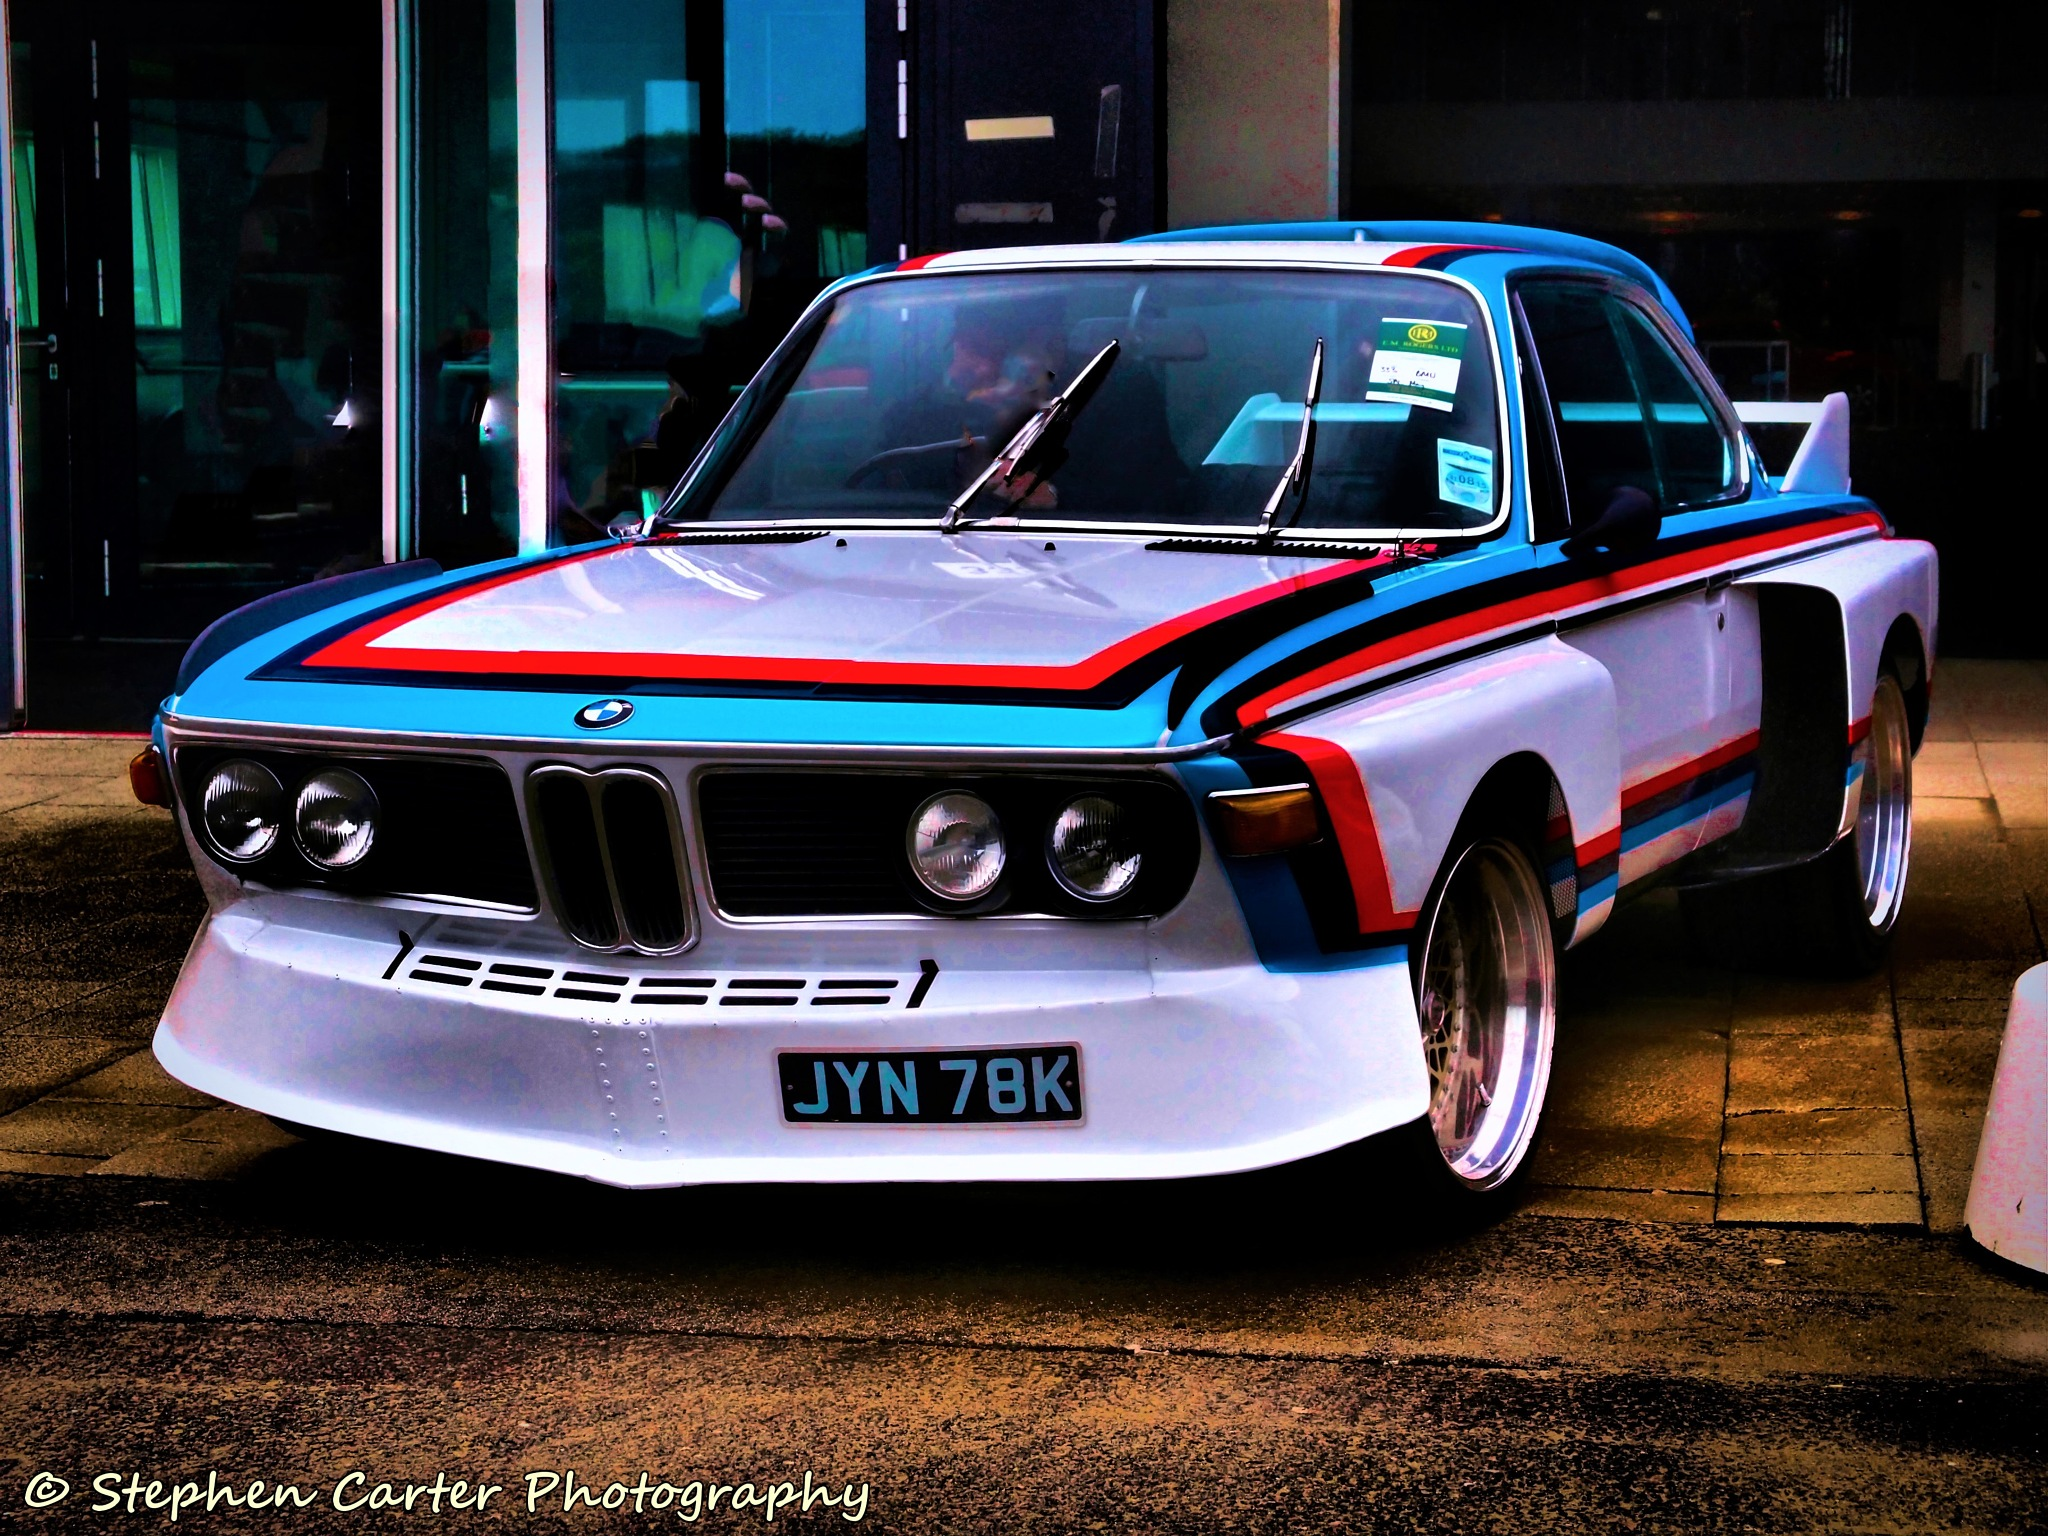 BMW 3.0 CSL by Stephen Carter Photography